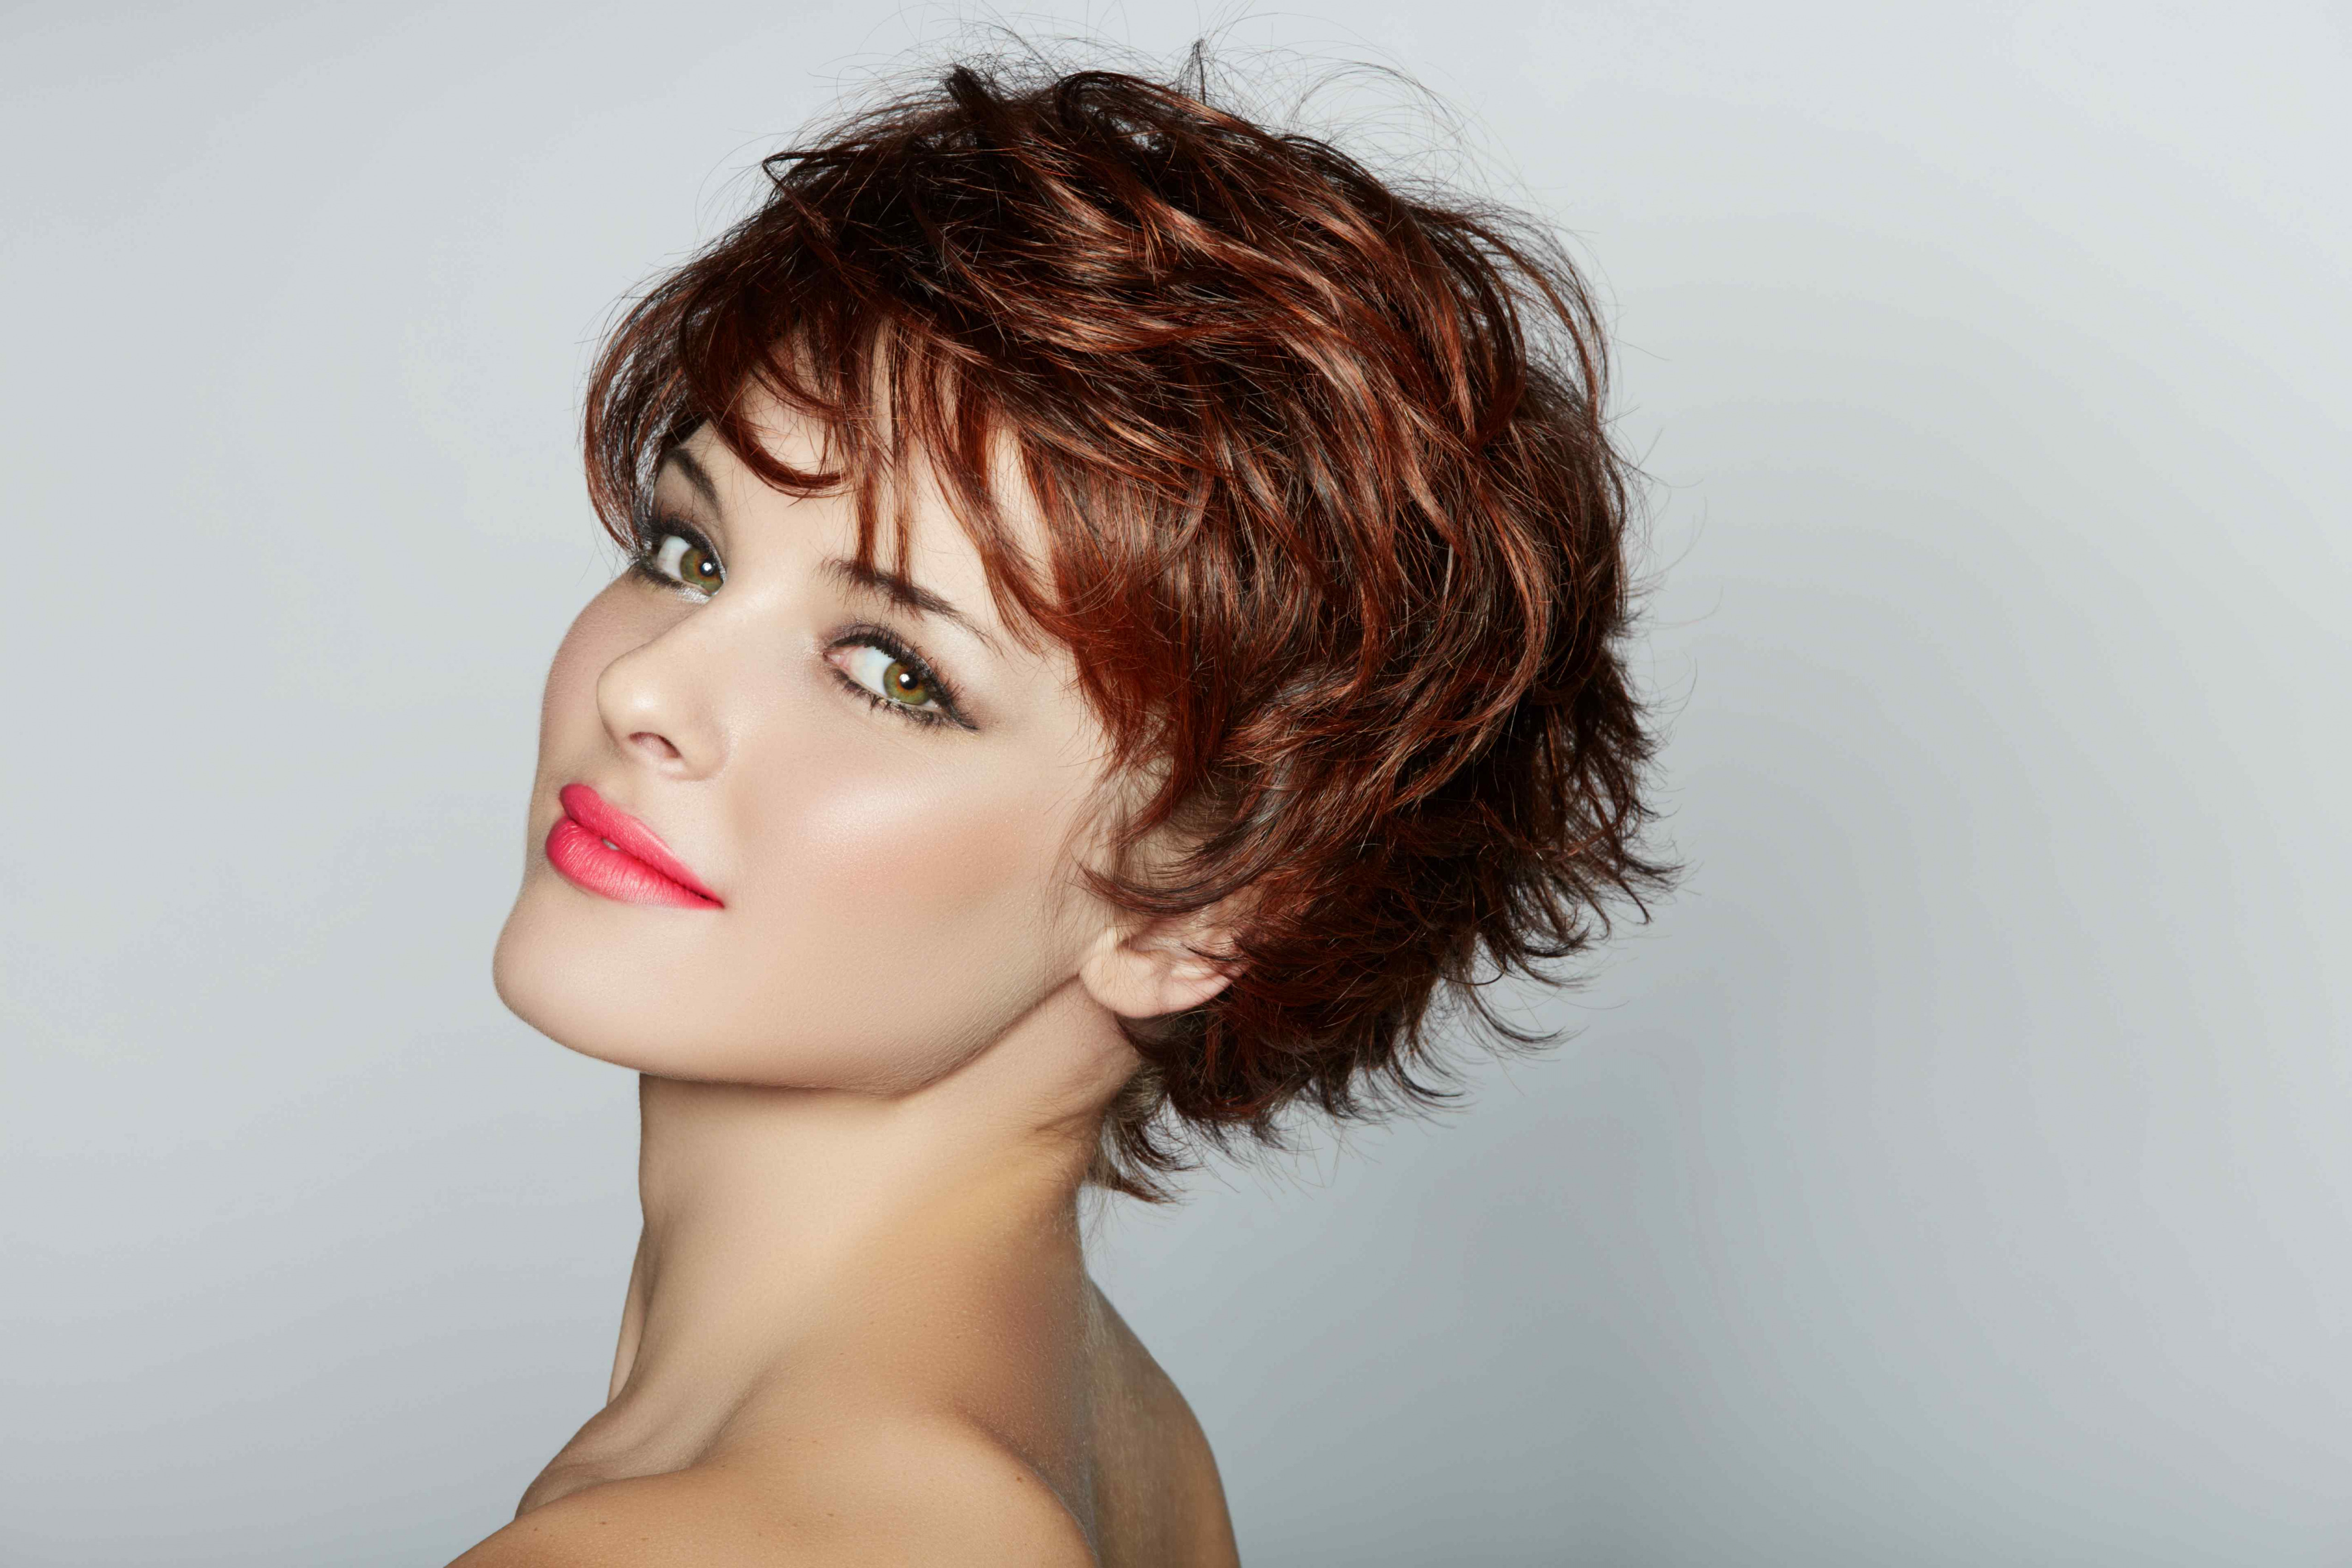 Short Hairstyles For Fine Hair   Best Hairstyles And Haircuts For Regarding Short Hairstyles For Wavy Fine Hair (View 21 of 25)